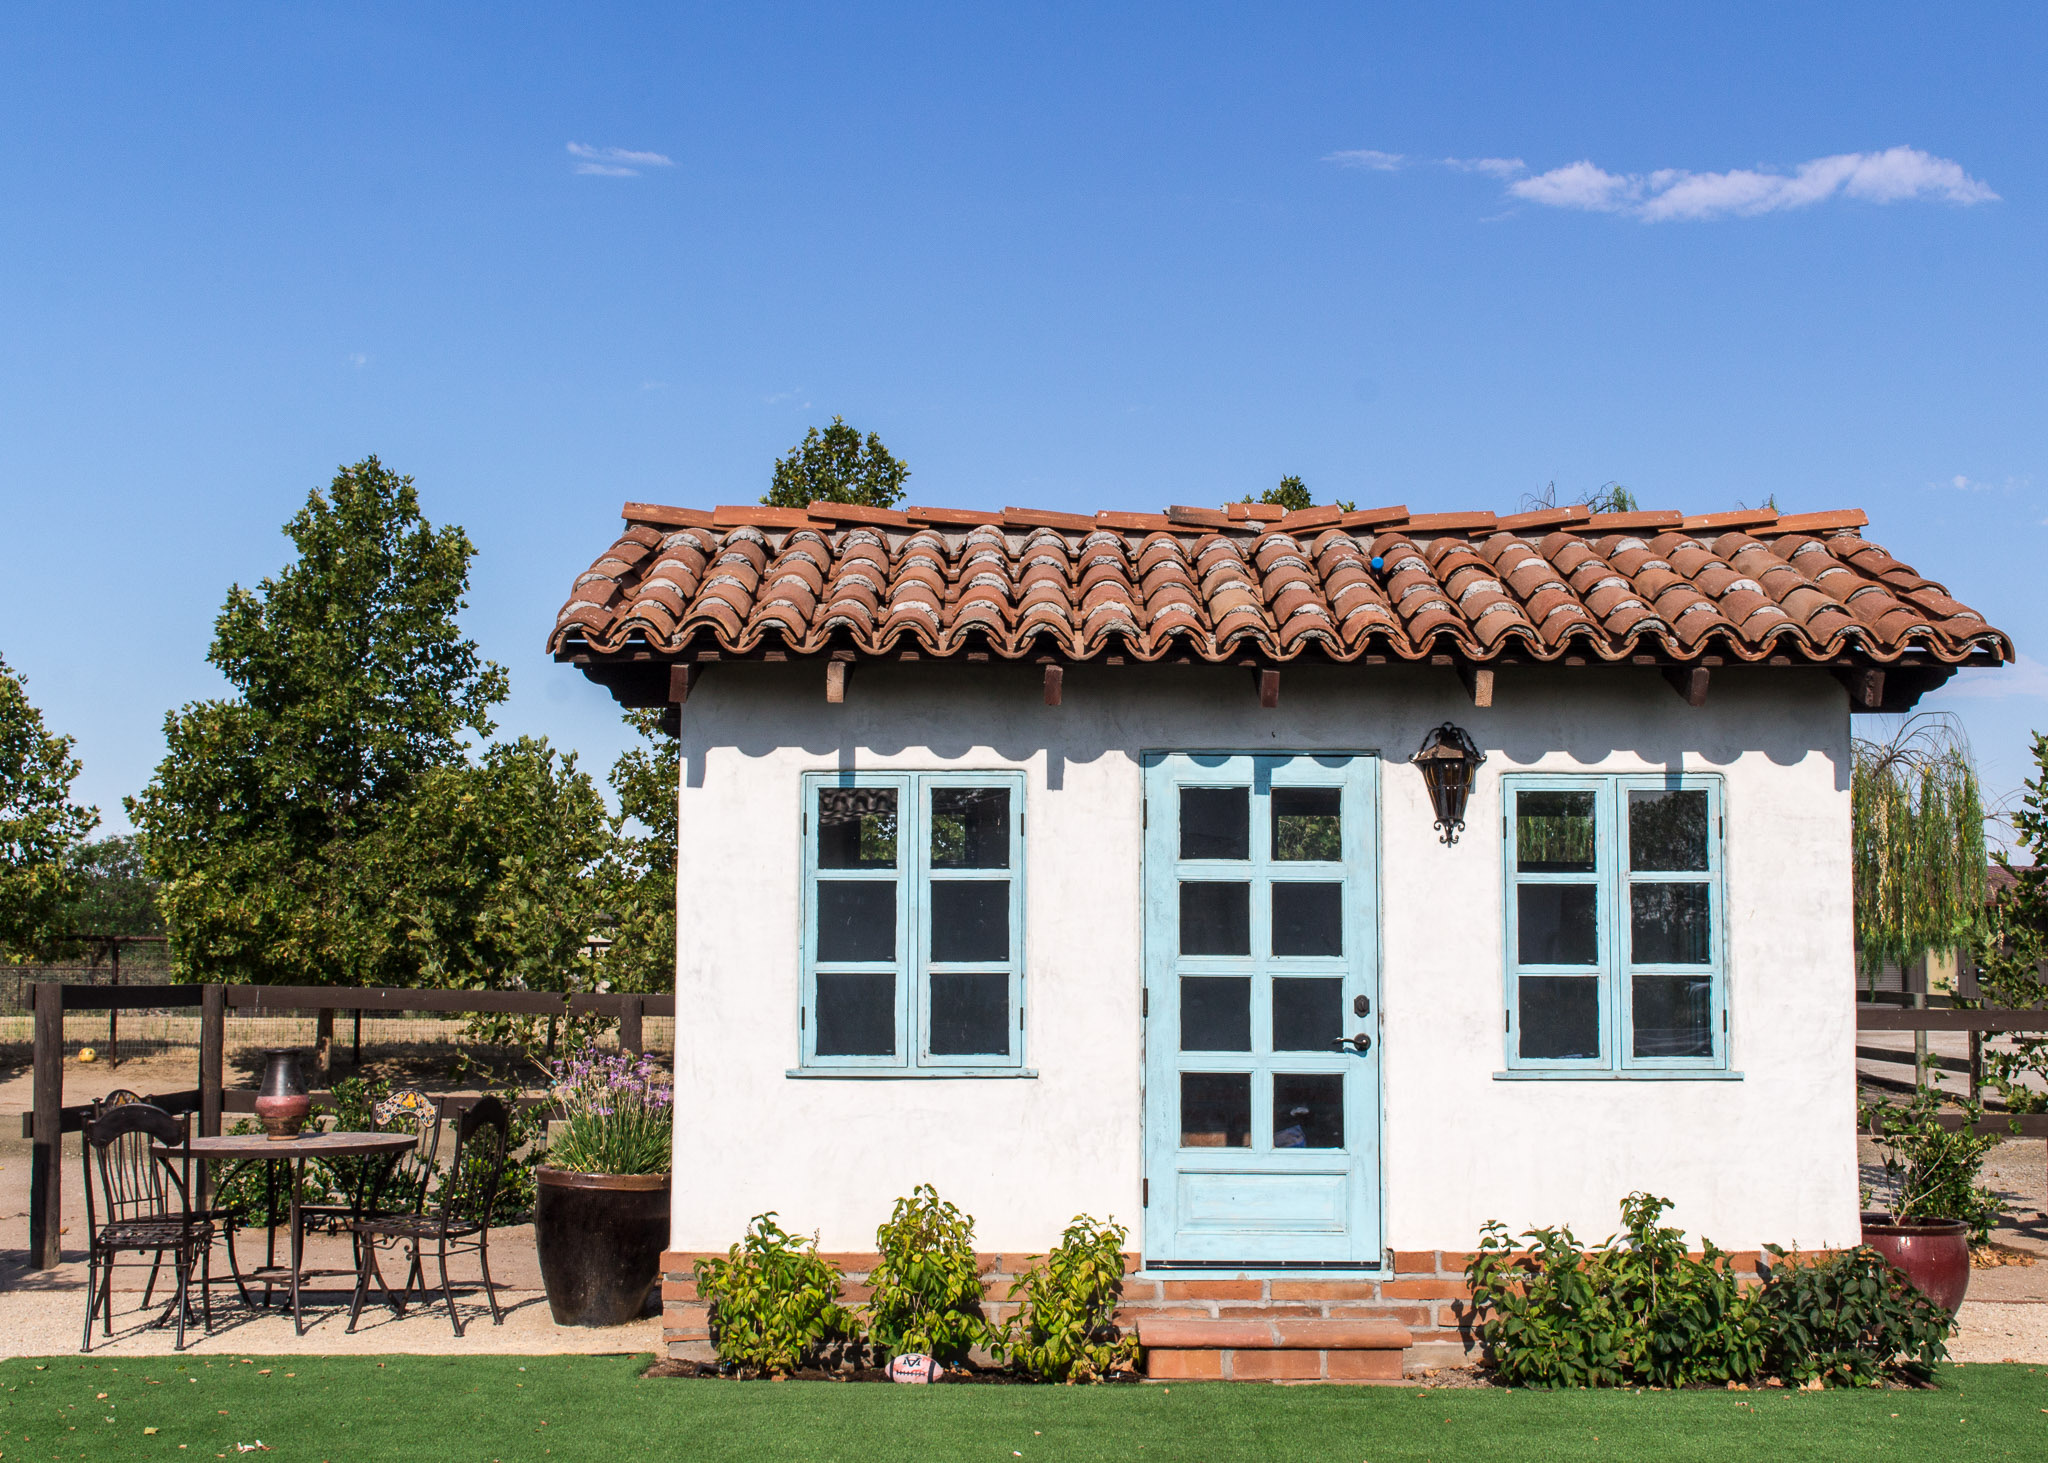 A casita in Paso Robles.